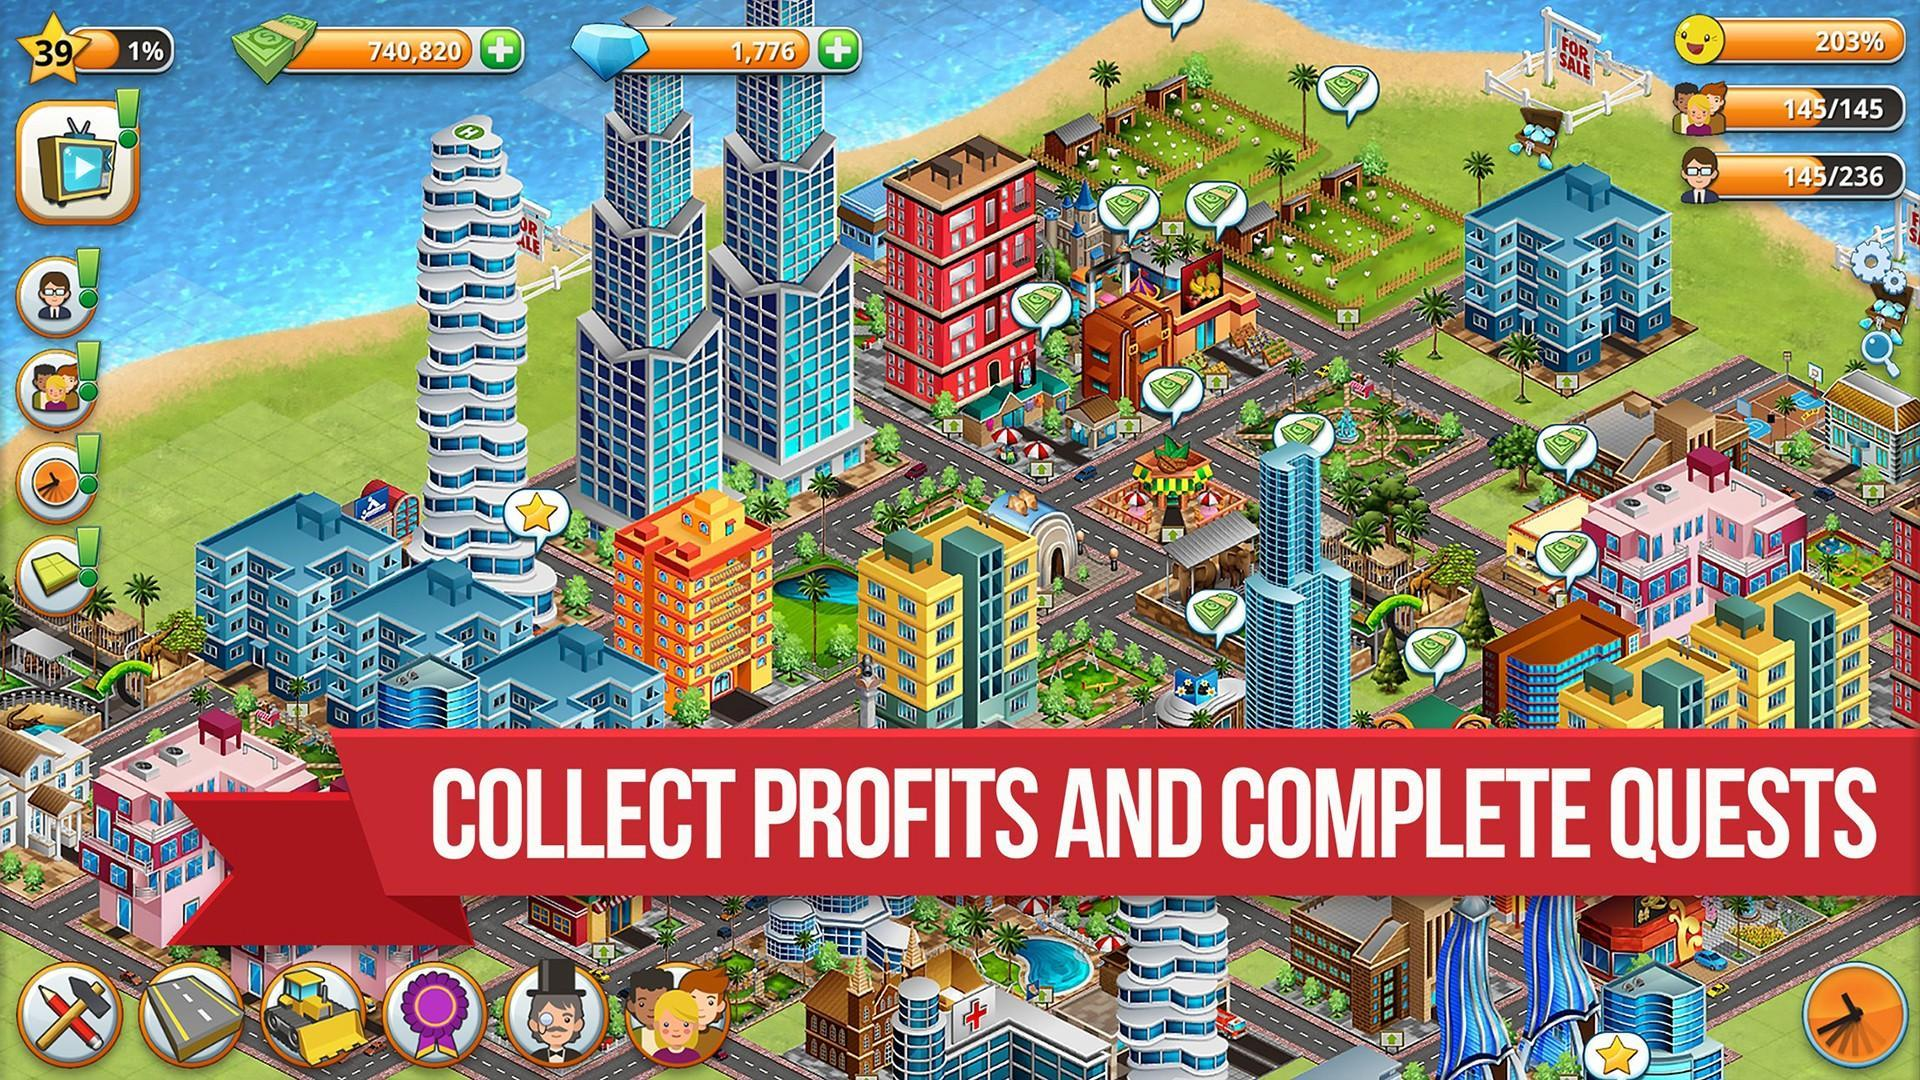 Download ga Village City - Island Simulation v1.9.5